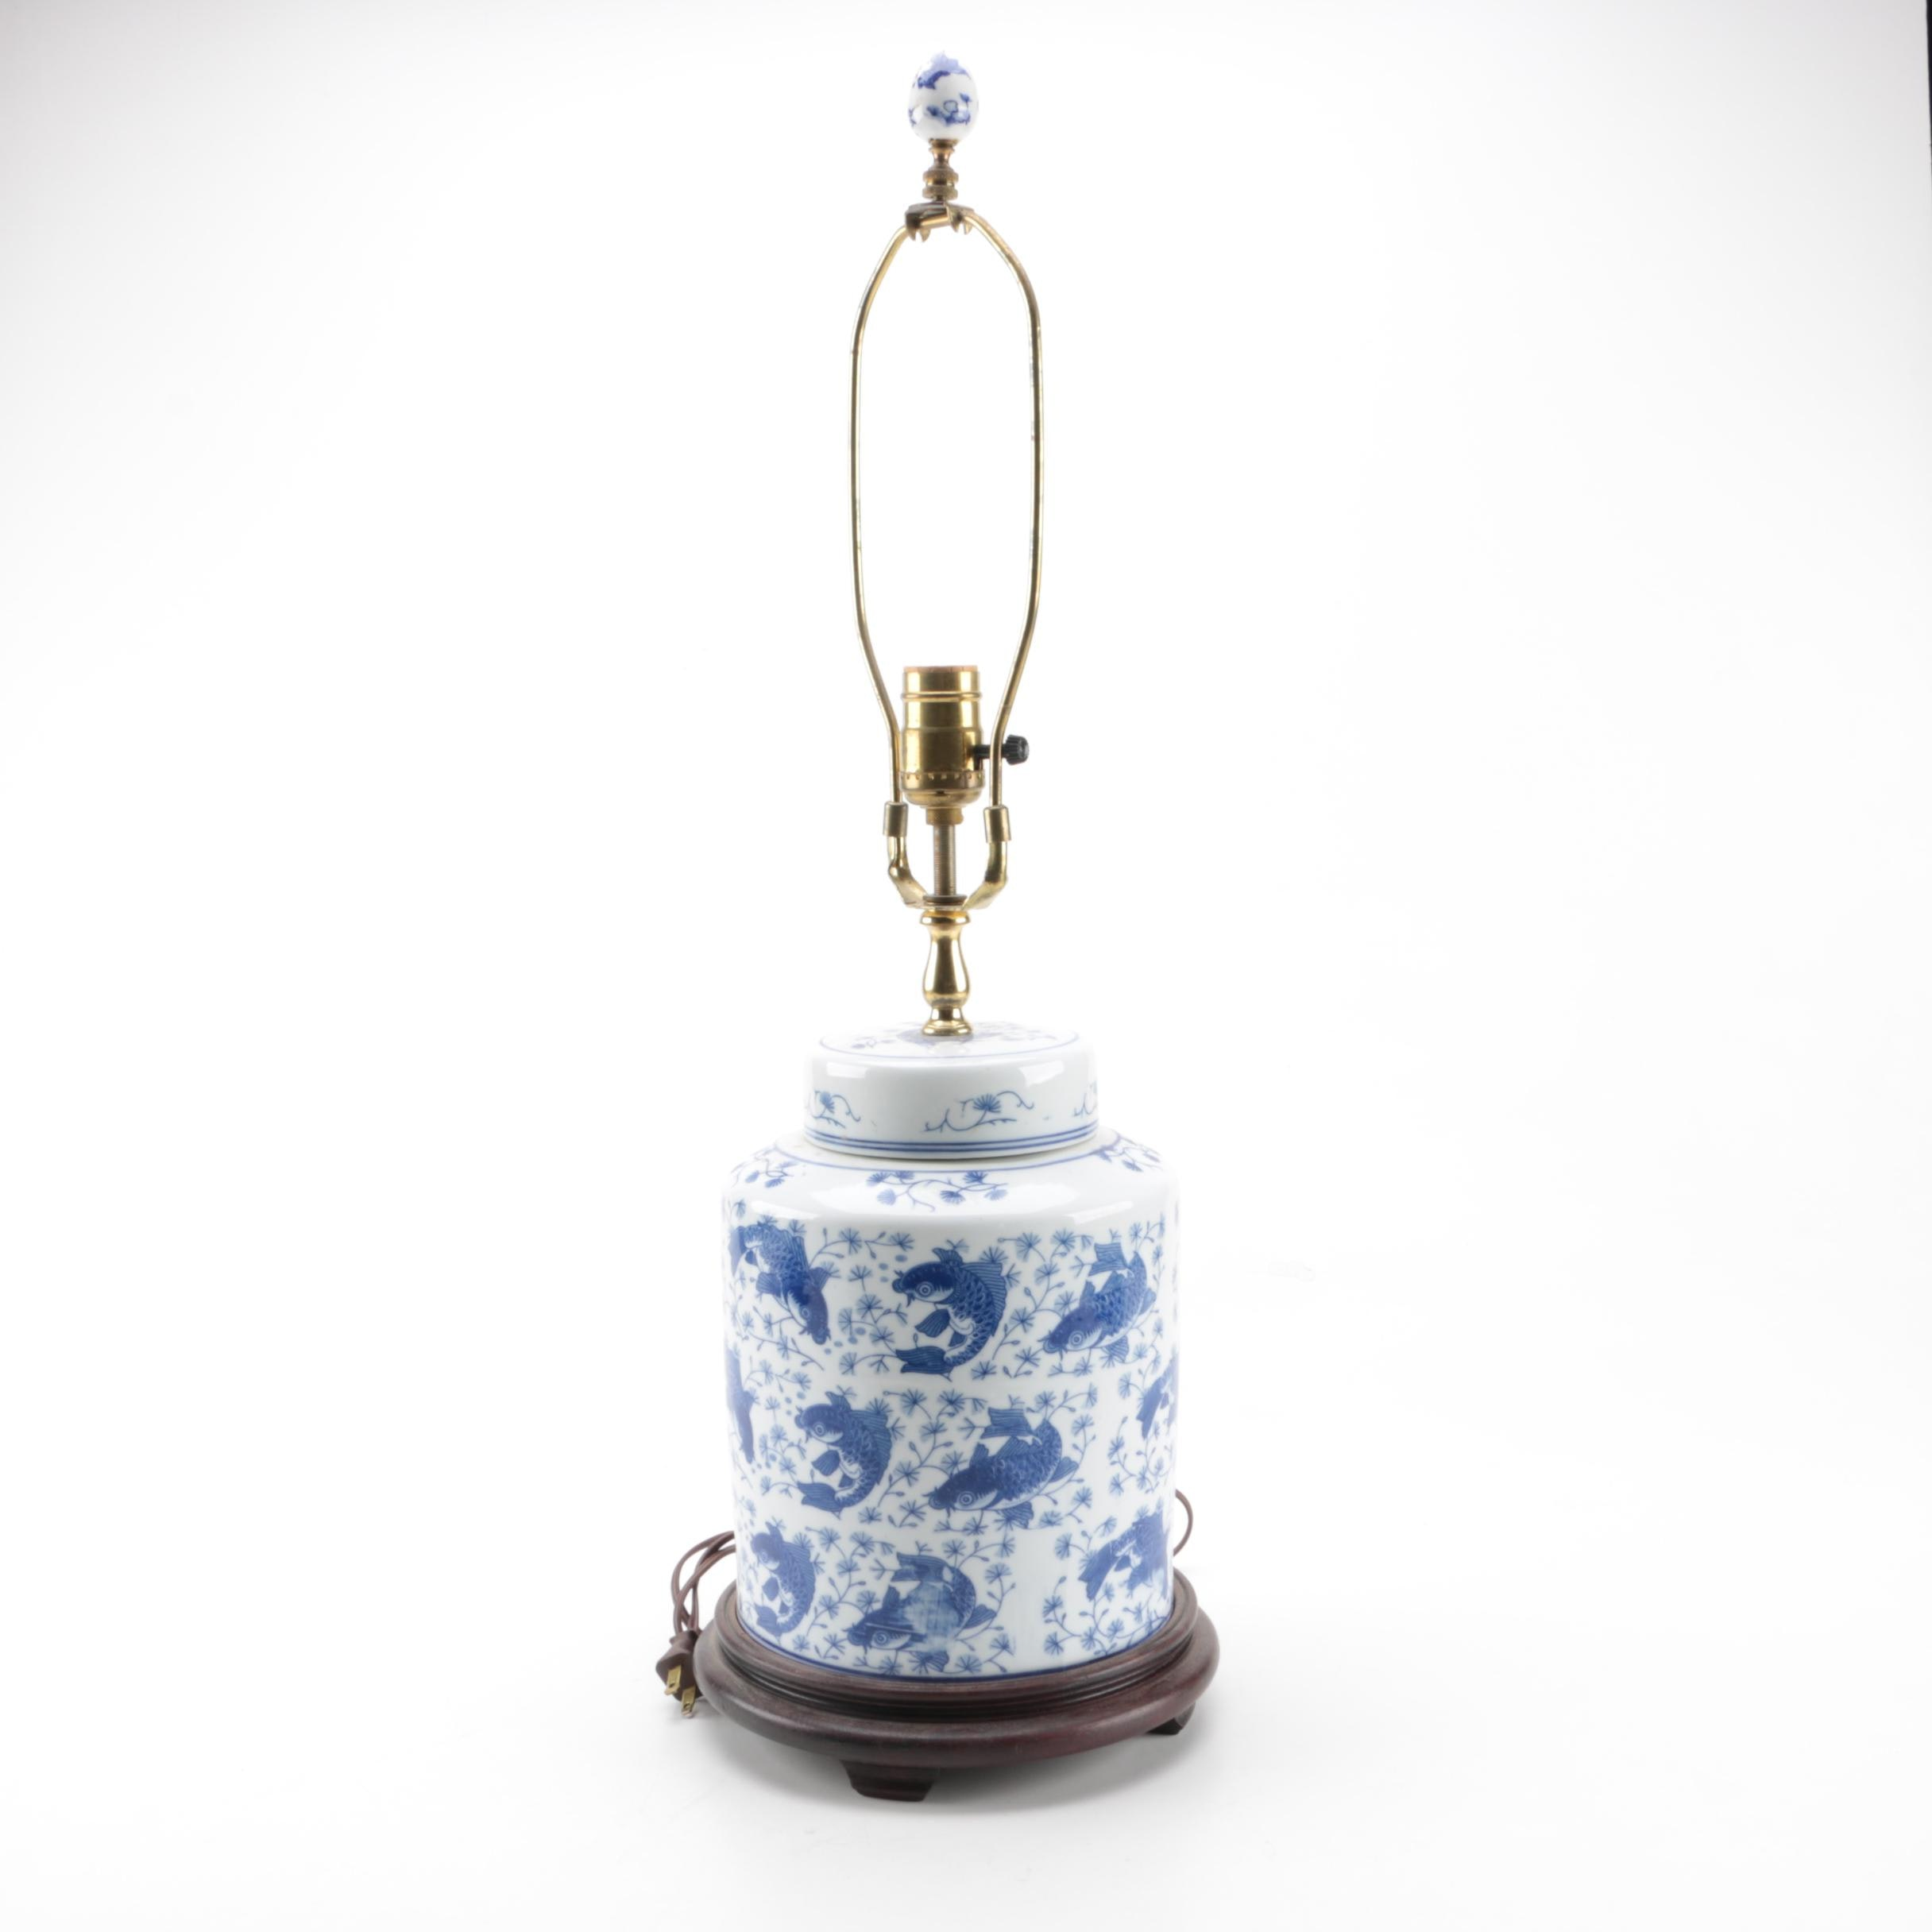 Chinoiserie Blue and White Ceramic Table Lamp